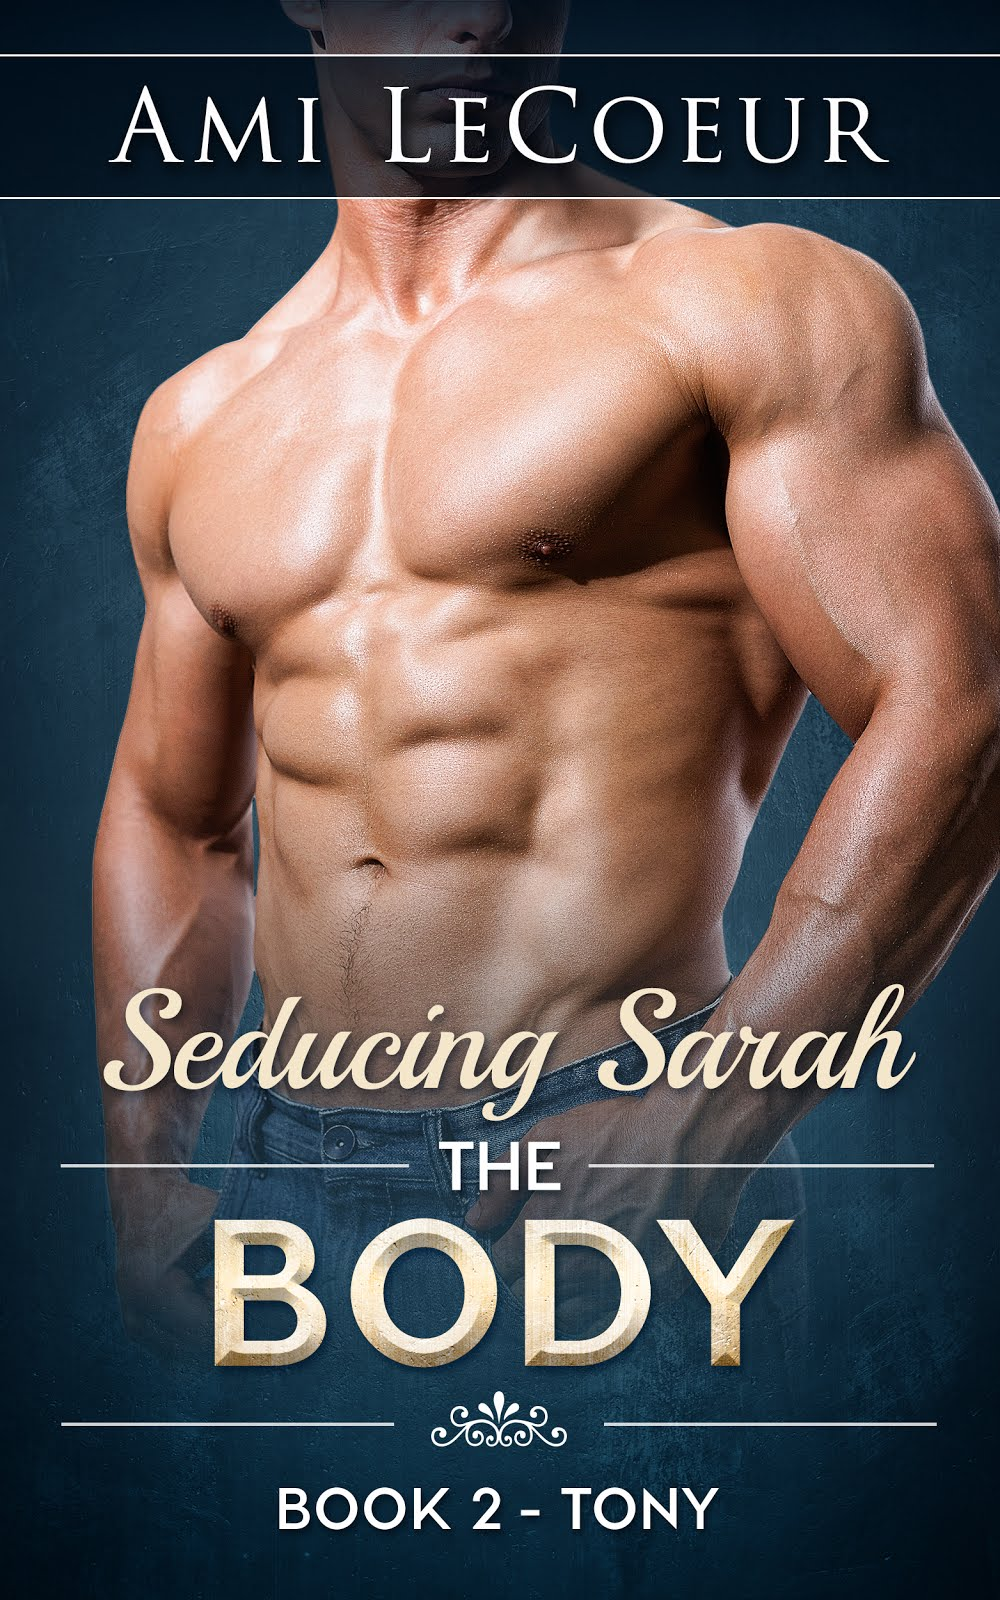 Seducing Sarah Book 2 - The Body: Tony